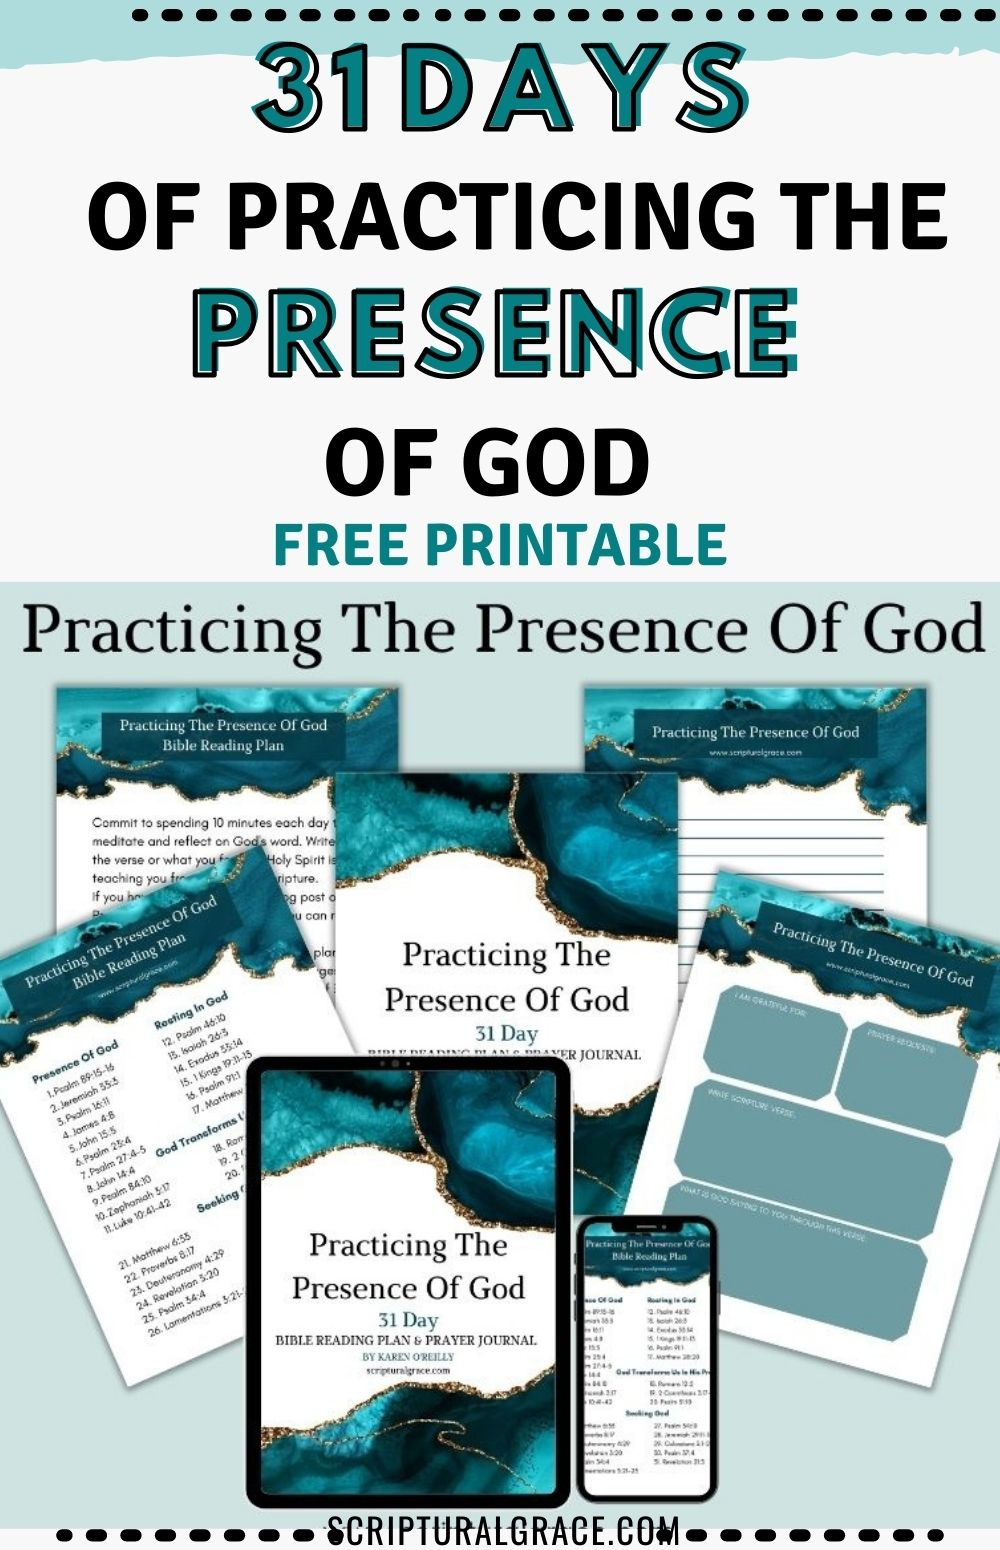 31 DAYS OF PRACTICING THE PRESENCE OF GOD FREE PRINTABLE WORKBOOK AND PRAYER JOURNAL WITH 31 SCRIPTURES.